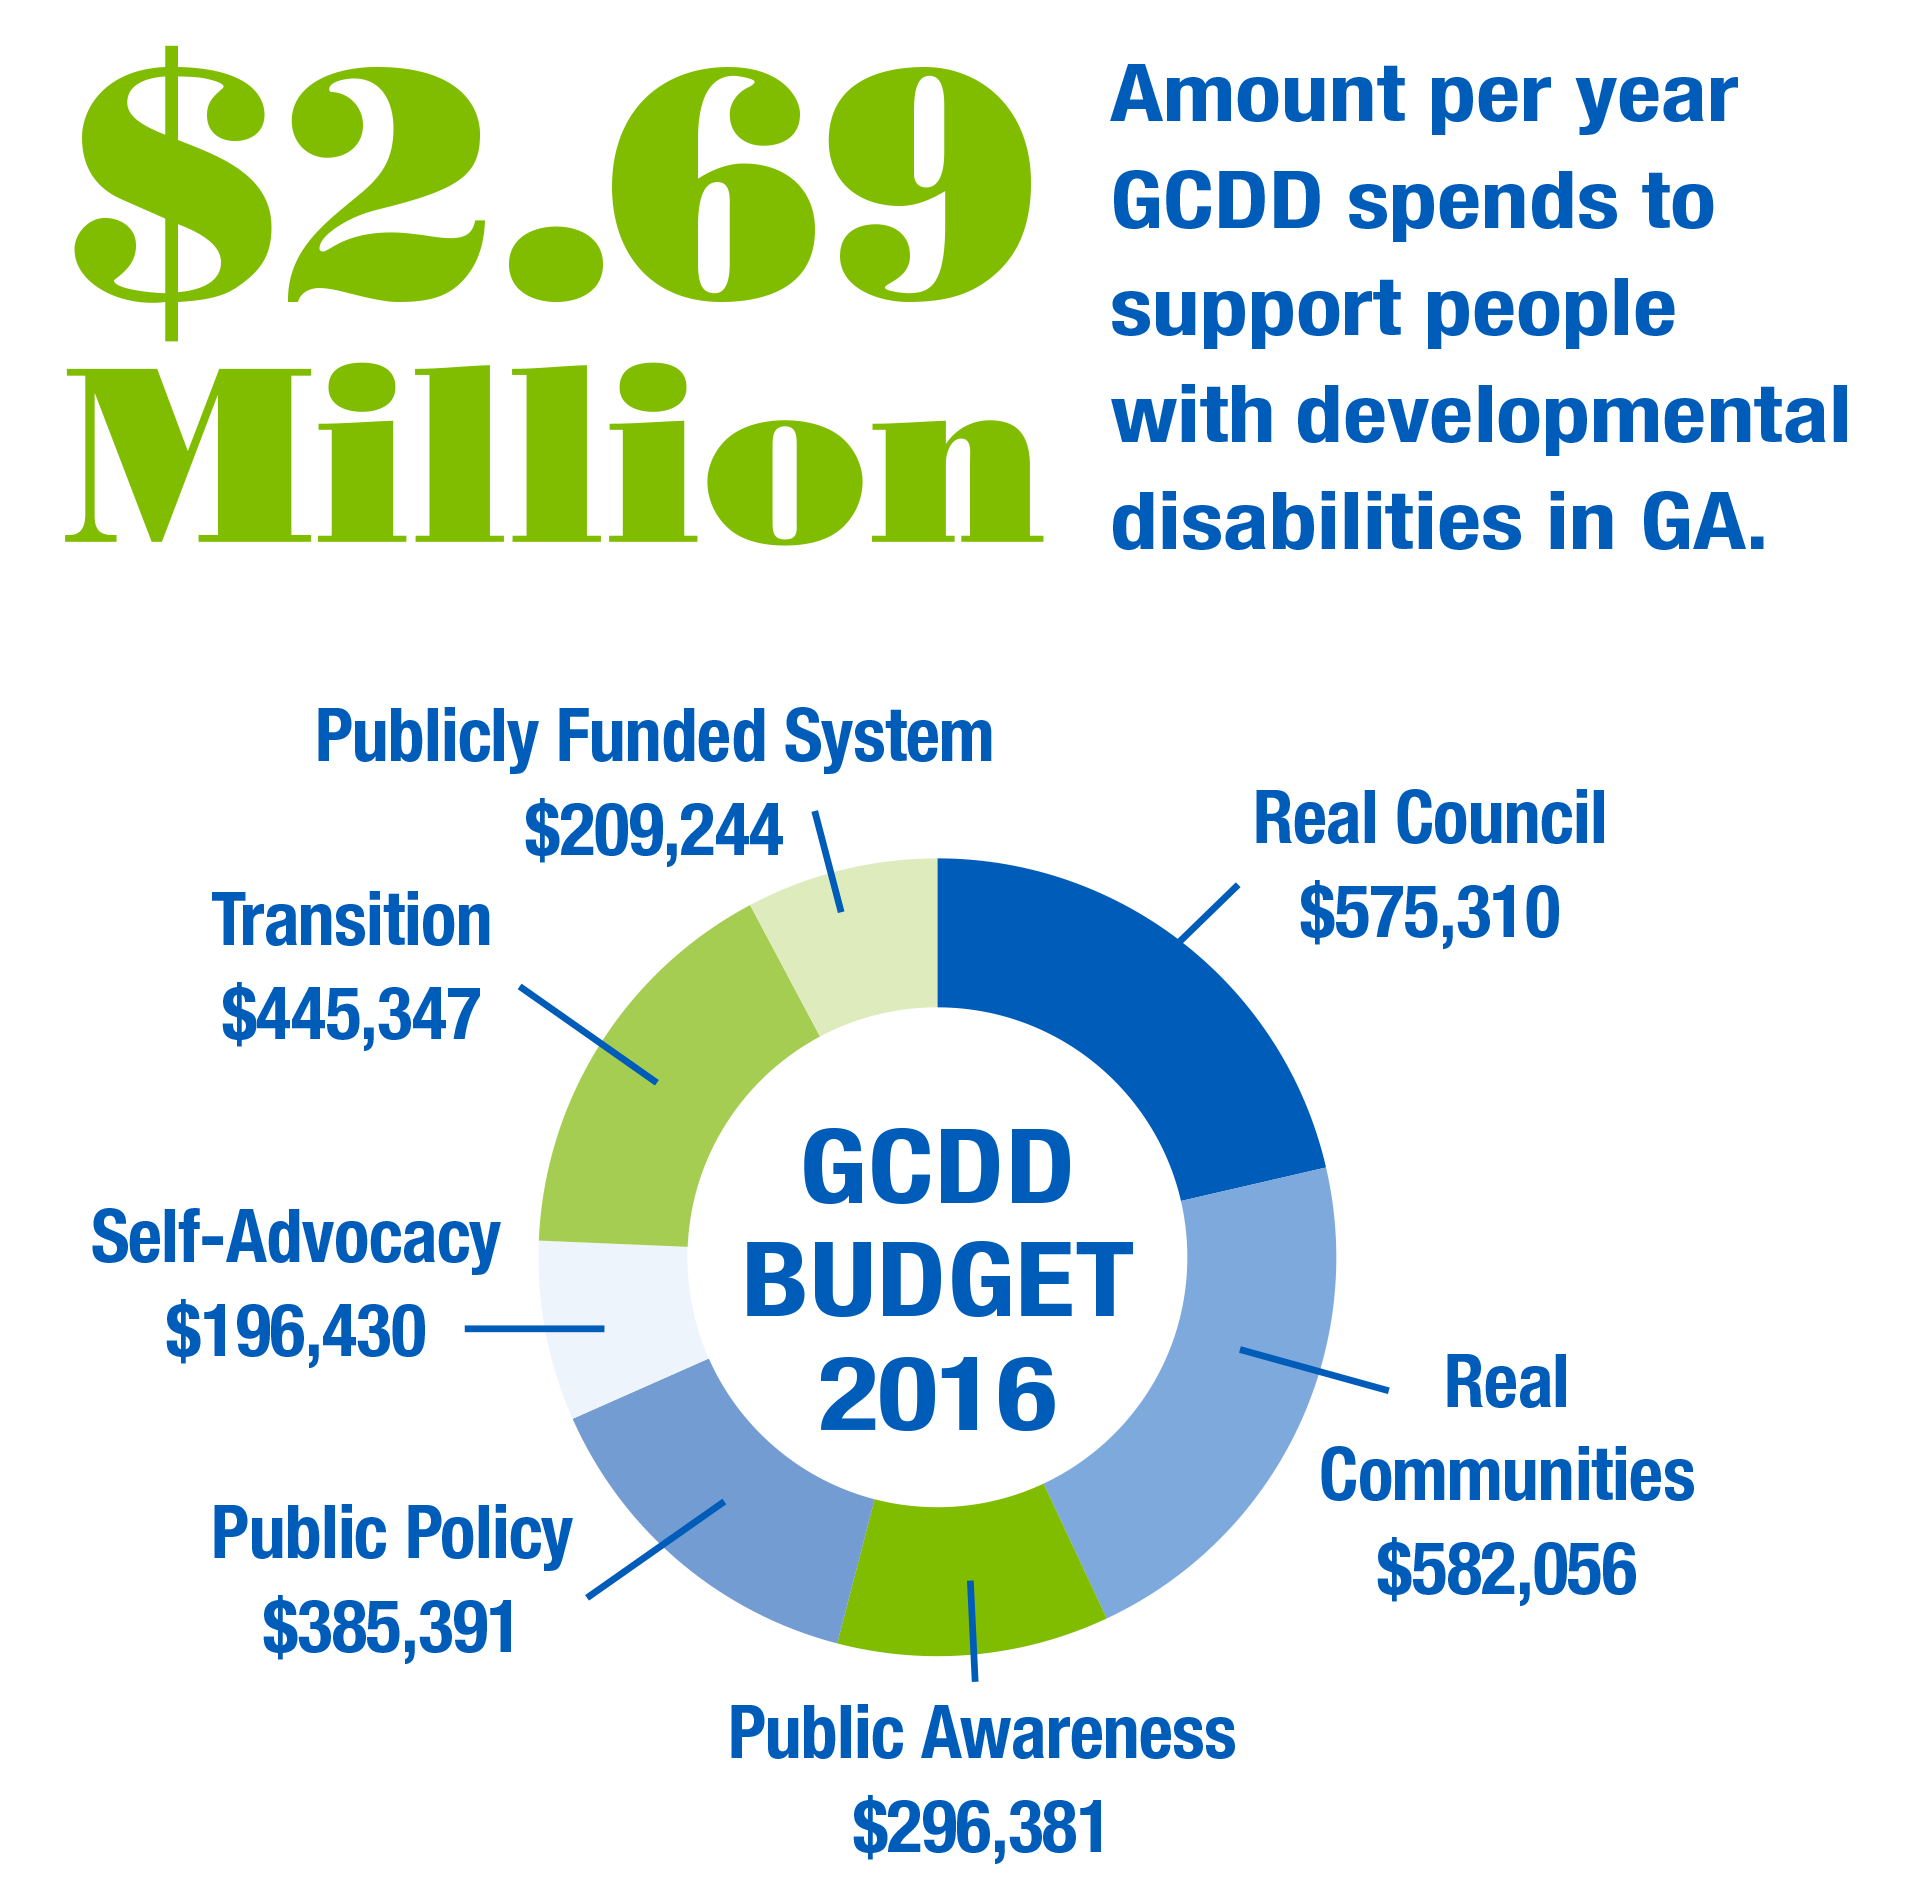 GCDD Budget 2016 - $2.69 Million - Amount per year GCDD spends to support people with developmental disabilities in GA. Real Council: $575,310.00, PRIORITY AREAS: Real Communities: $582,056.00, Public Awareness: $296,381.00, Public Policy: $385,391.00, Self-Advocacy: $196,430.00, Transition: $445,347.00, Public Funded System: $209,244.00, Total Expenditures: $2,690,159.00